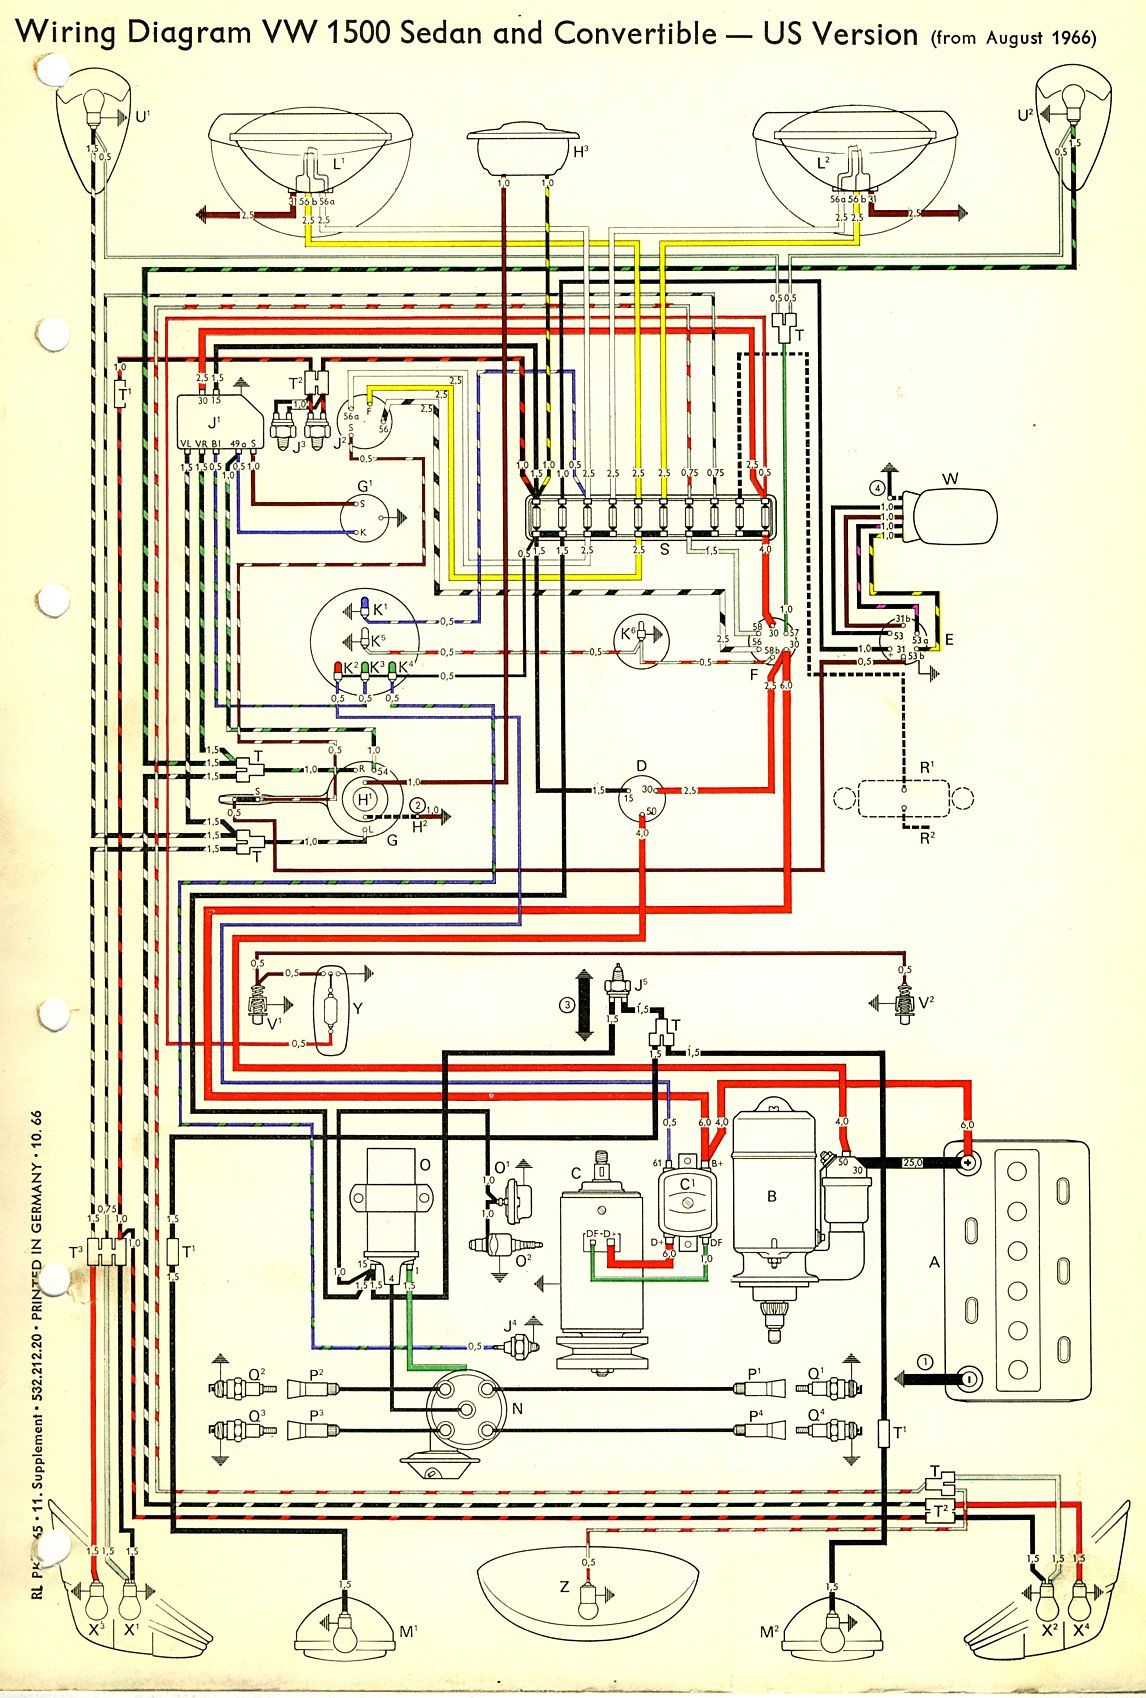 Basic Circuit Wiring Diagram Vw Buggy Trusted Dune Turn Signal 1967 Beetle Usa Thegoldenbug Com Best Rh Pinterest 1968 Systems